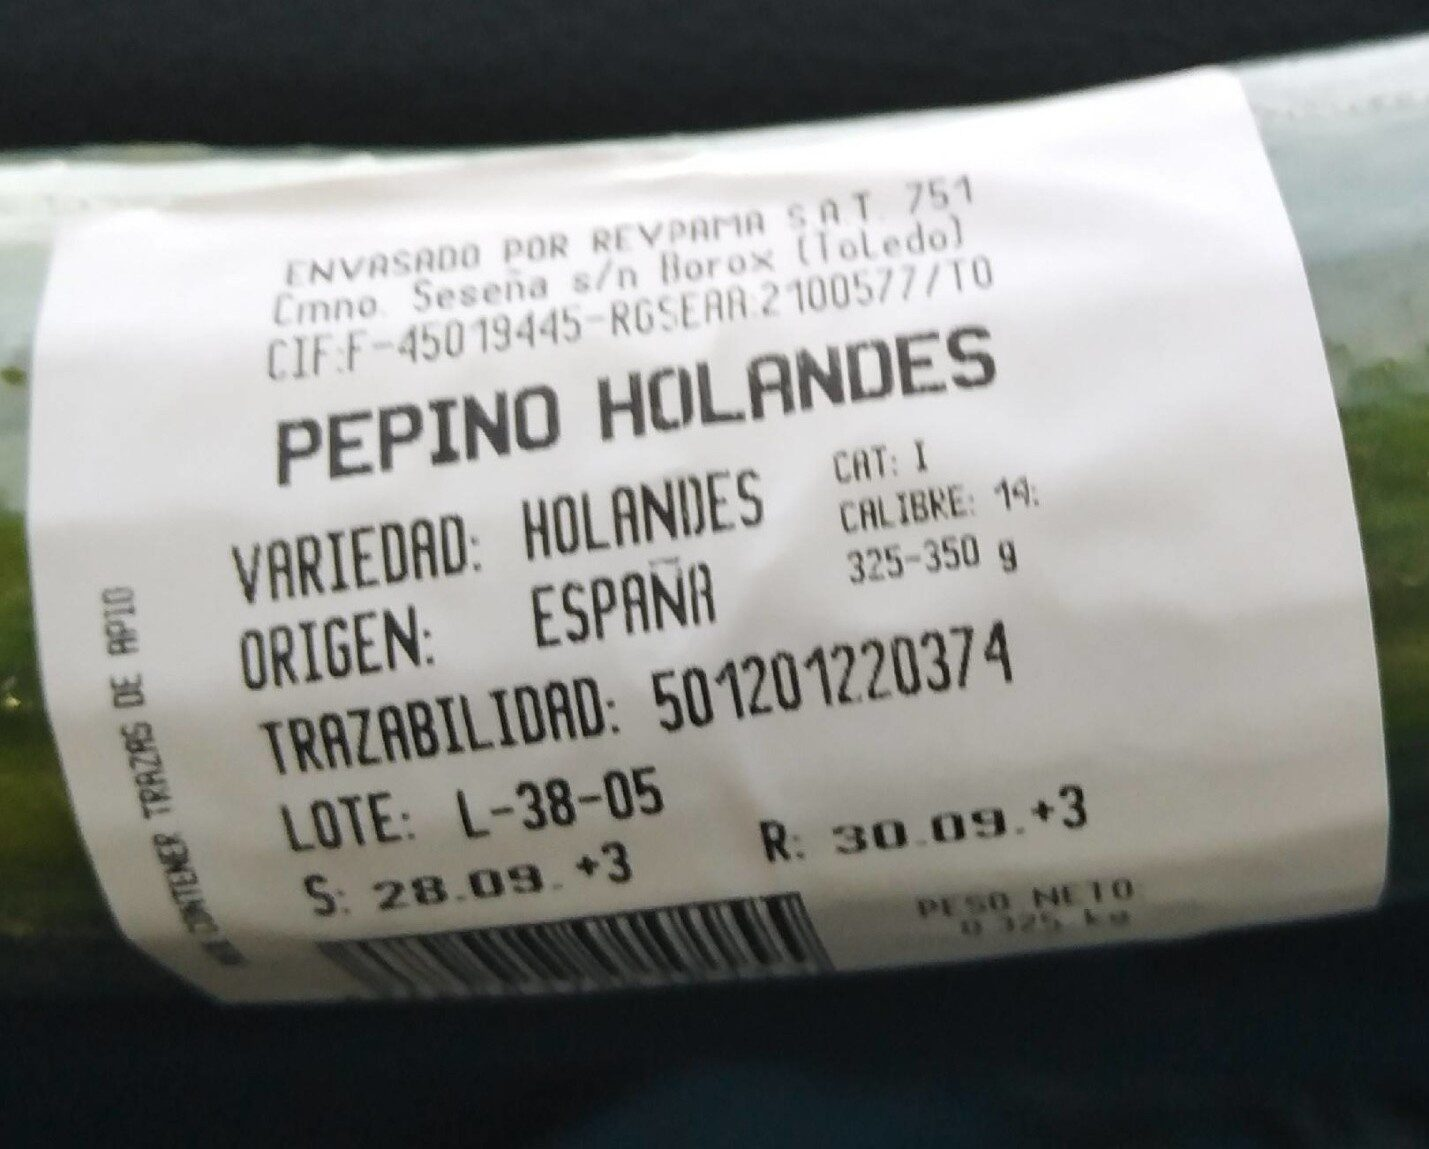 Pepino holandes - Informations nutritionnelles - es